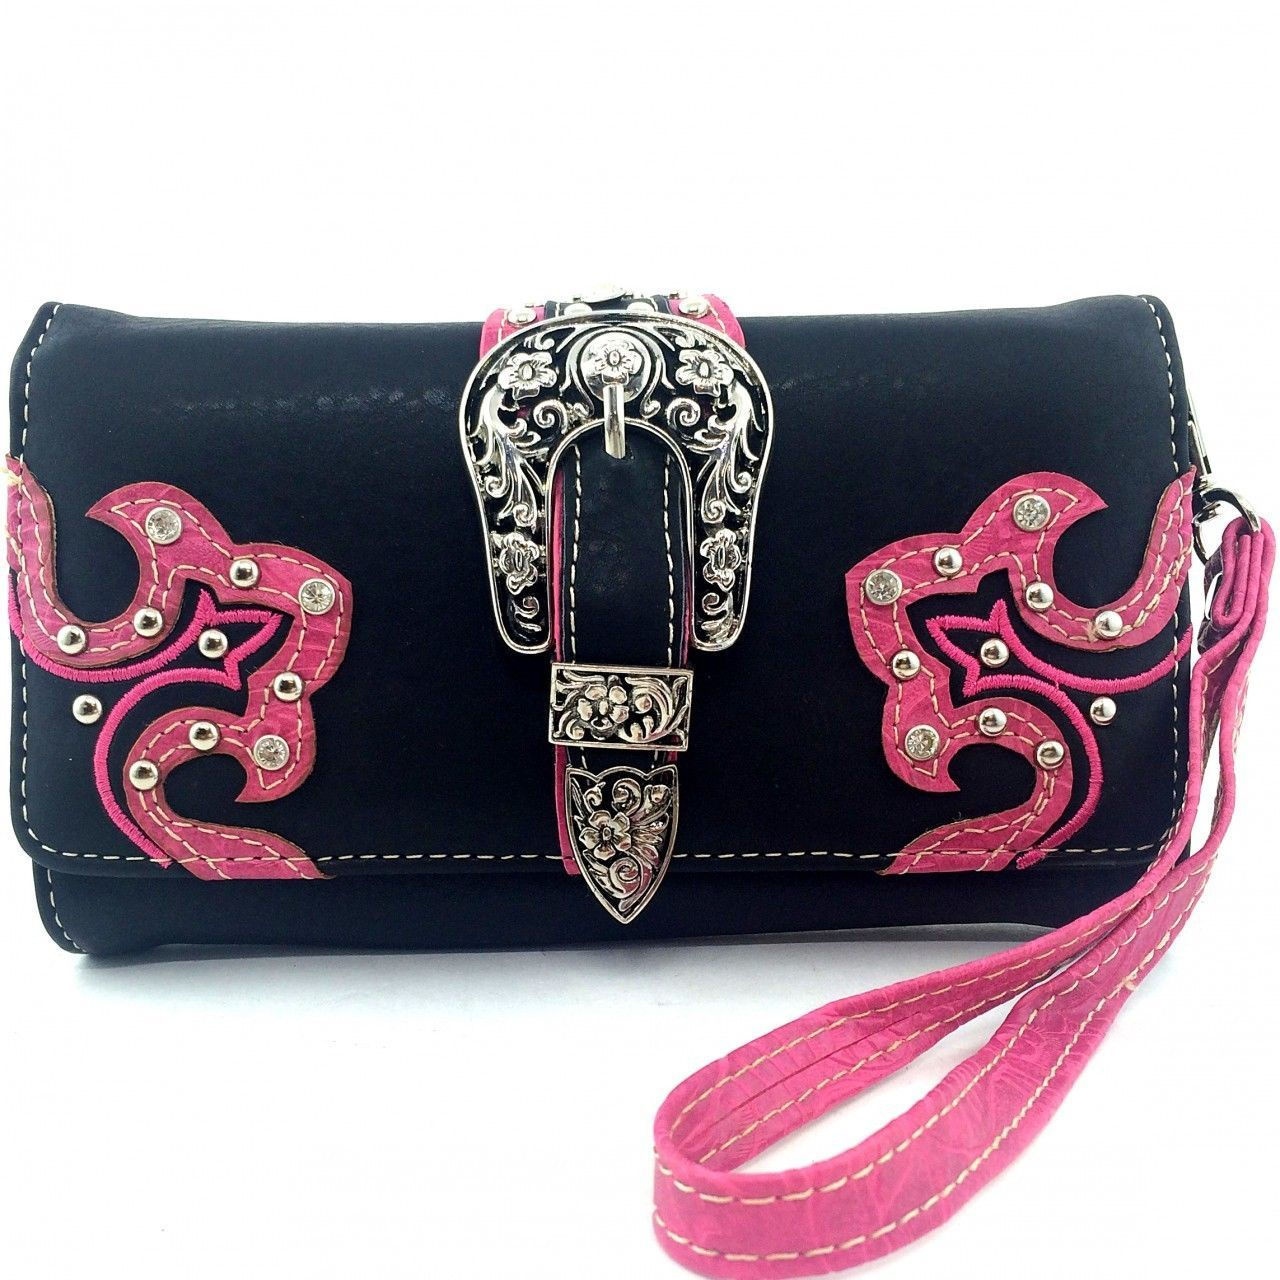 Western Buckle Rhinestone Studded Zip Around Wallet Clutch Purse Wristlet